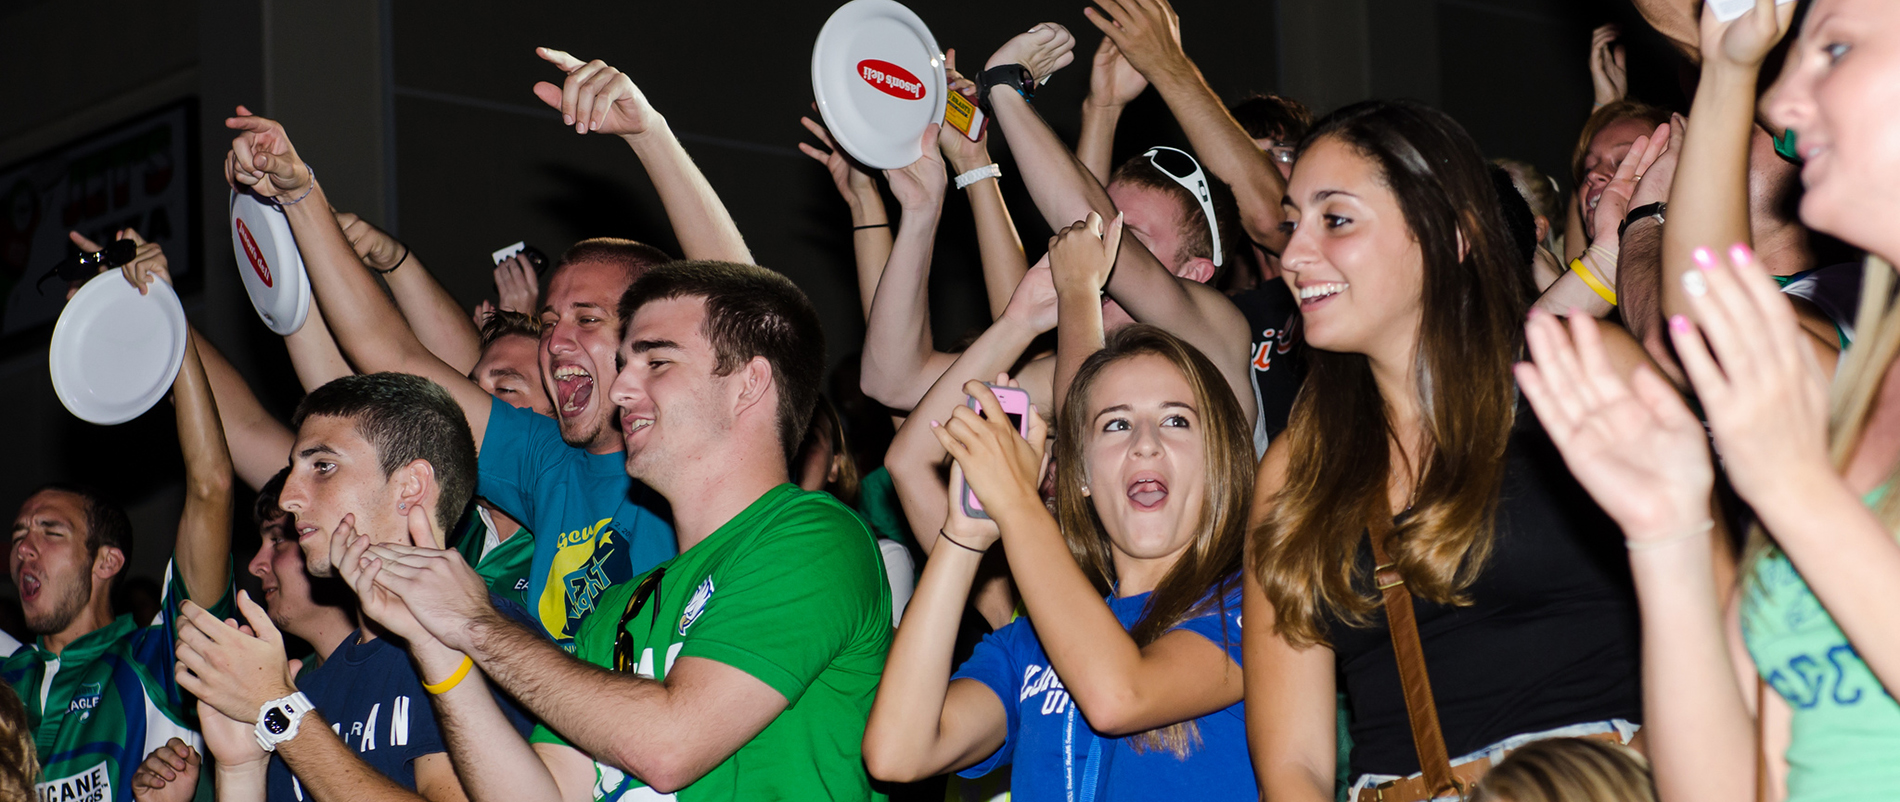 This is a photo of FGCU students celebrating